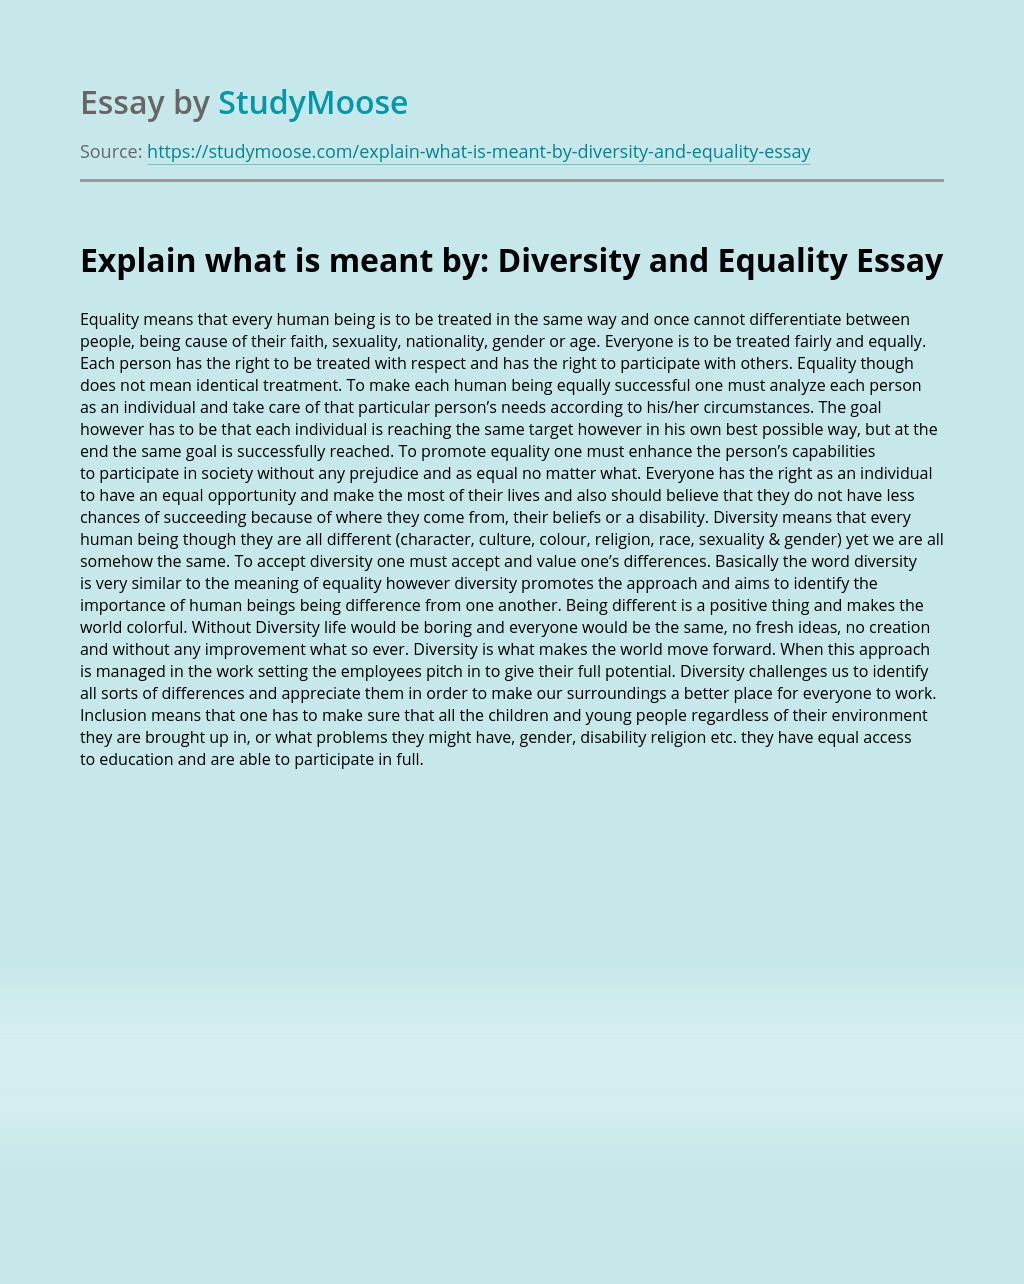 Explain what is meant by: Diversity and Equality